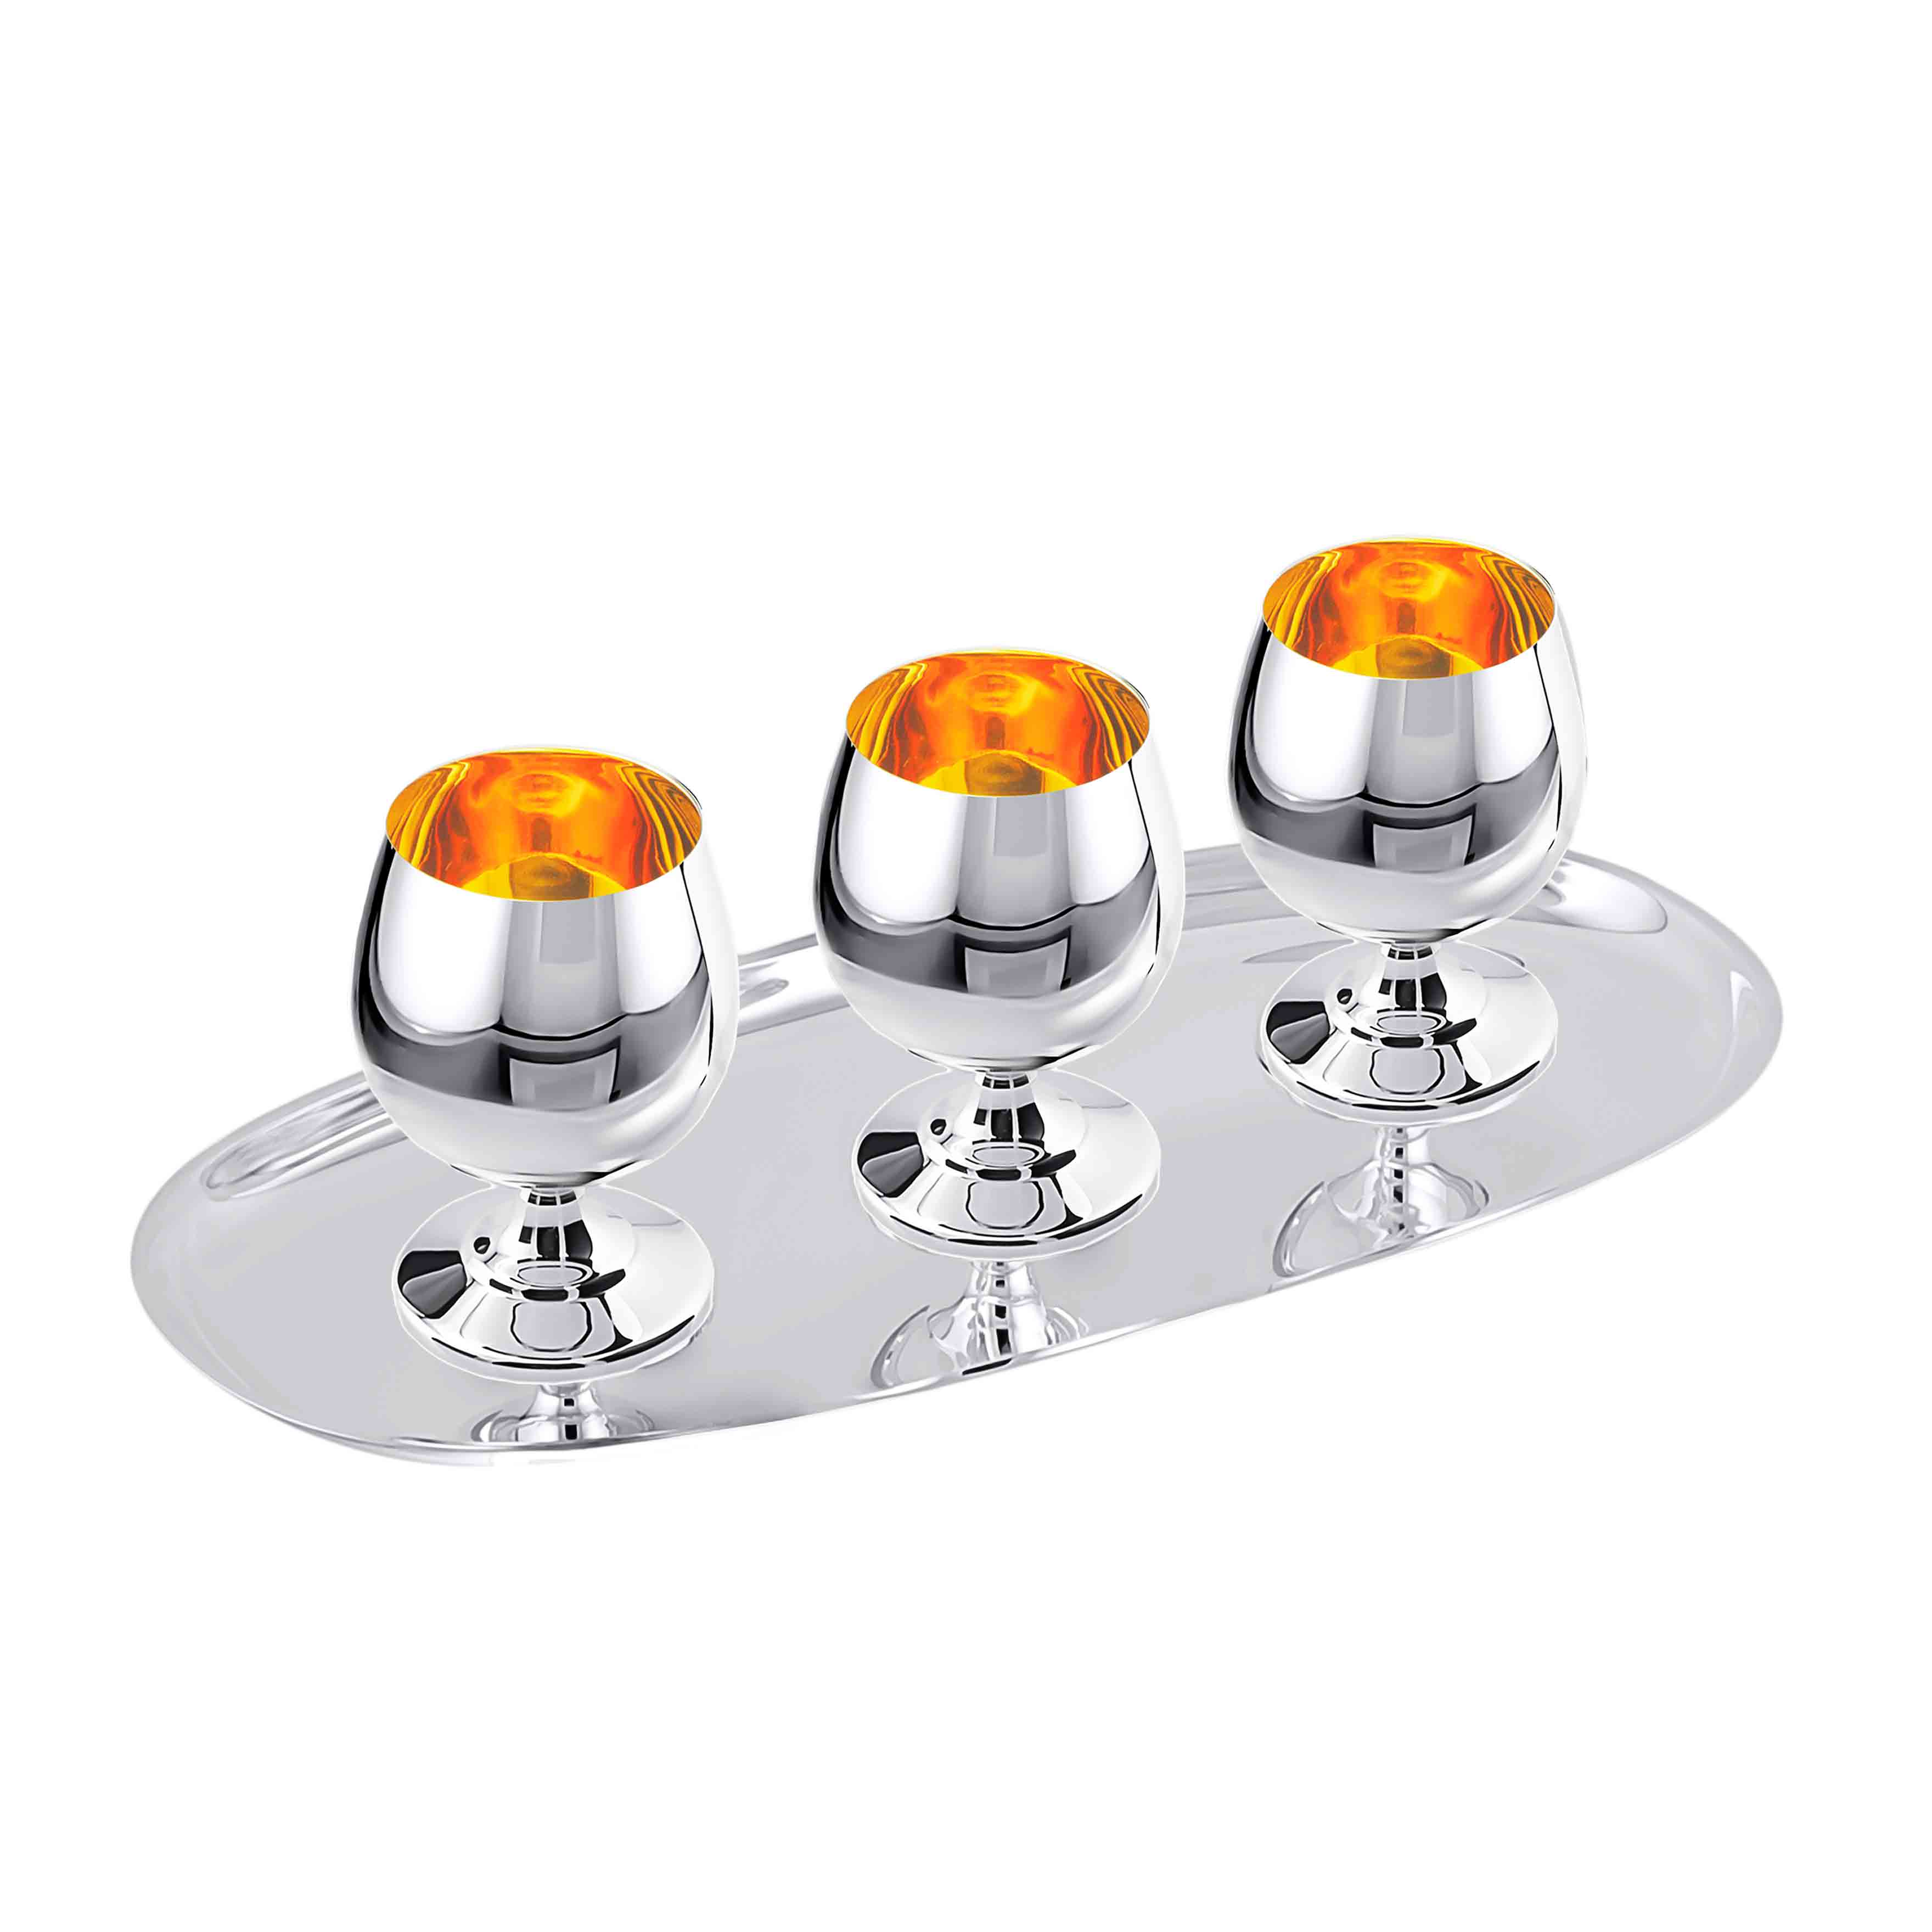 Cognac Silver Set for 3: 50ml Snifters on Tray